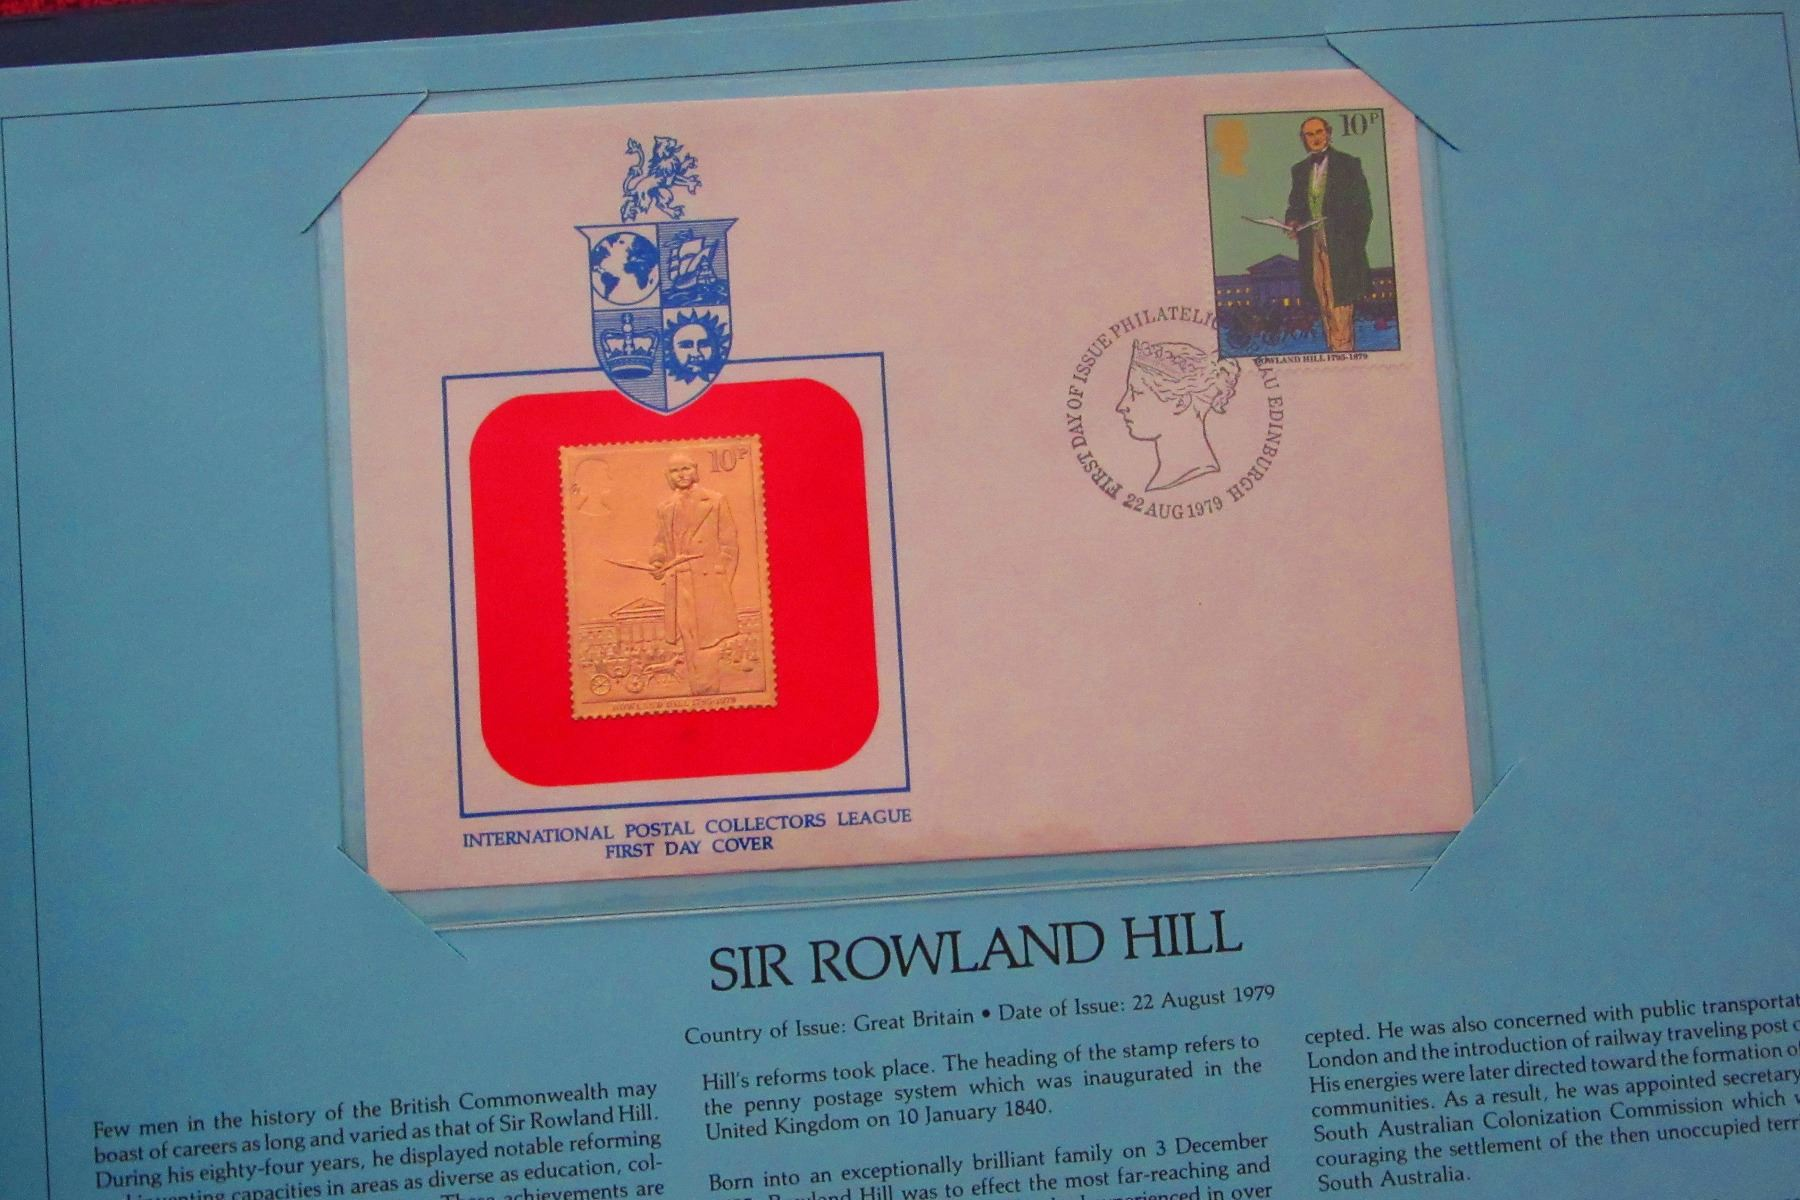 THE ROYAL INTERNATIONAL GOLD COLLECTION OF FIRST DAY COVERS